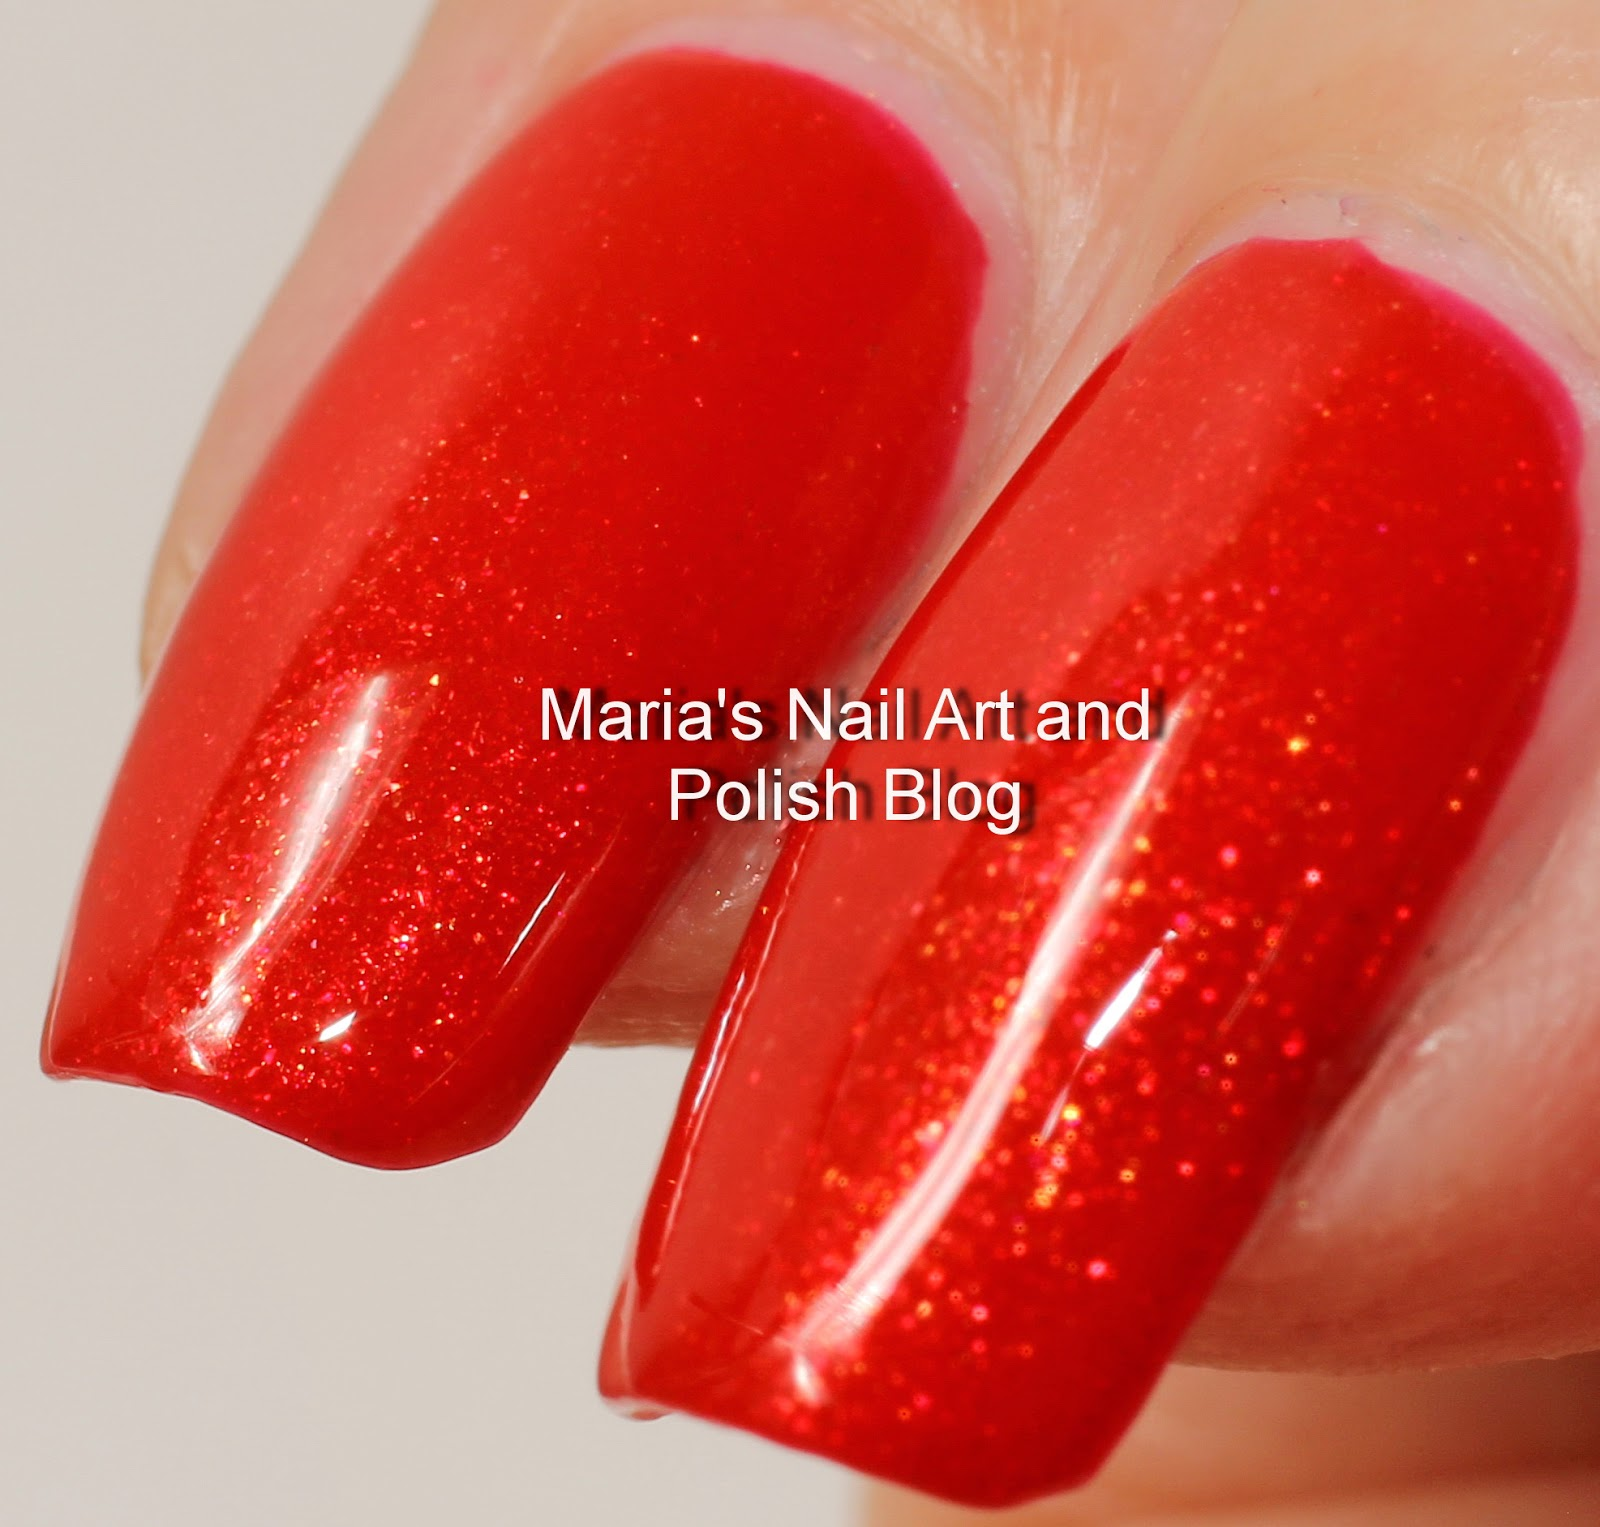 Marias Nail Art And Polish Blog Flushed With Stripes And: Marias Nail Art And Polish Blog: Linda Johansen Dazzle Red